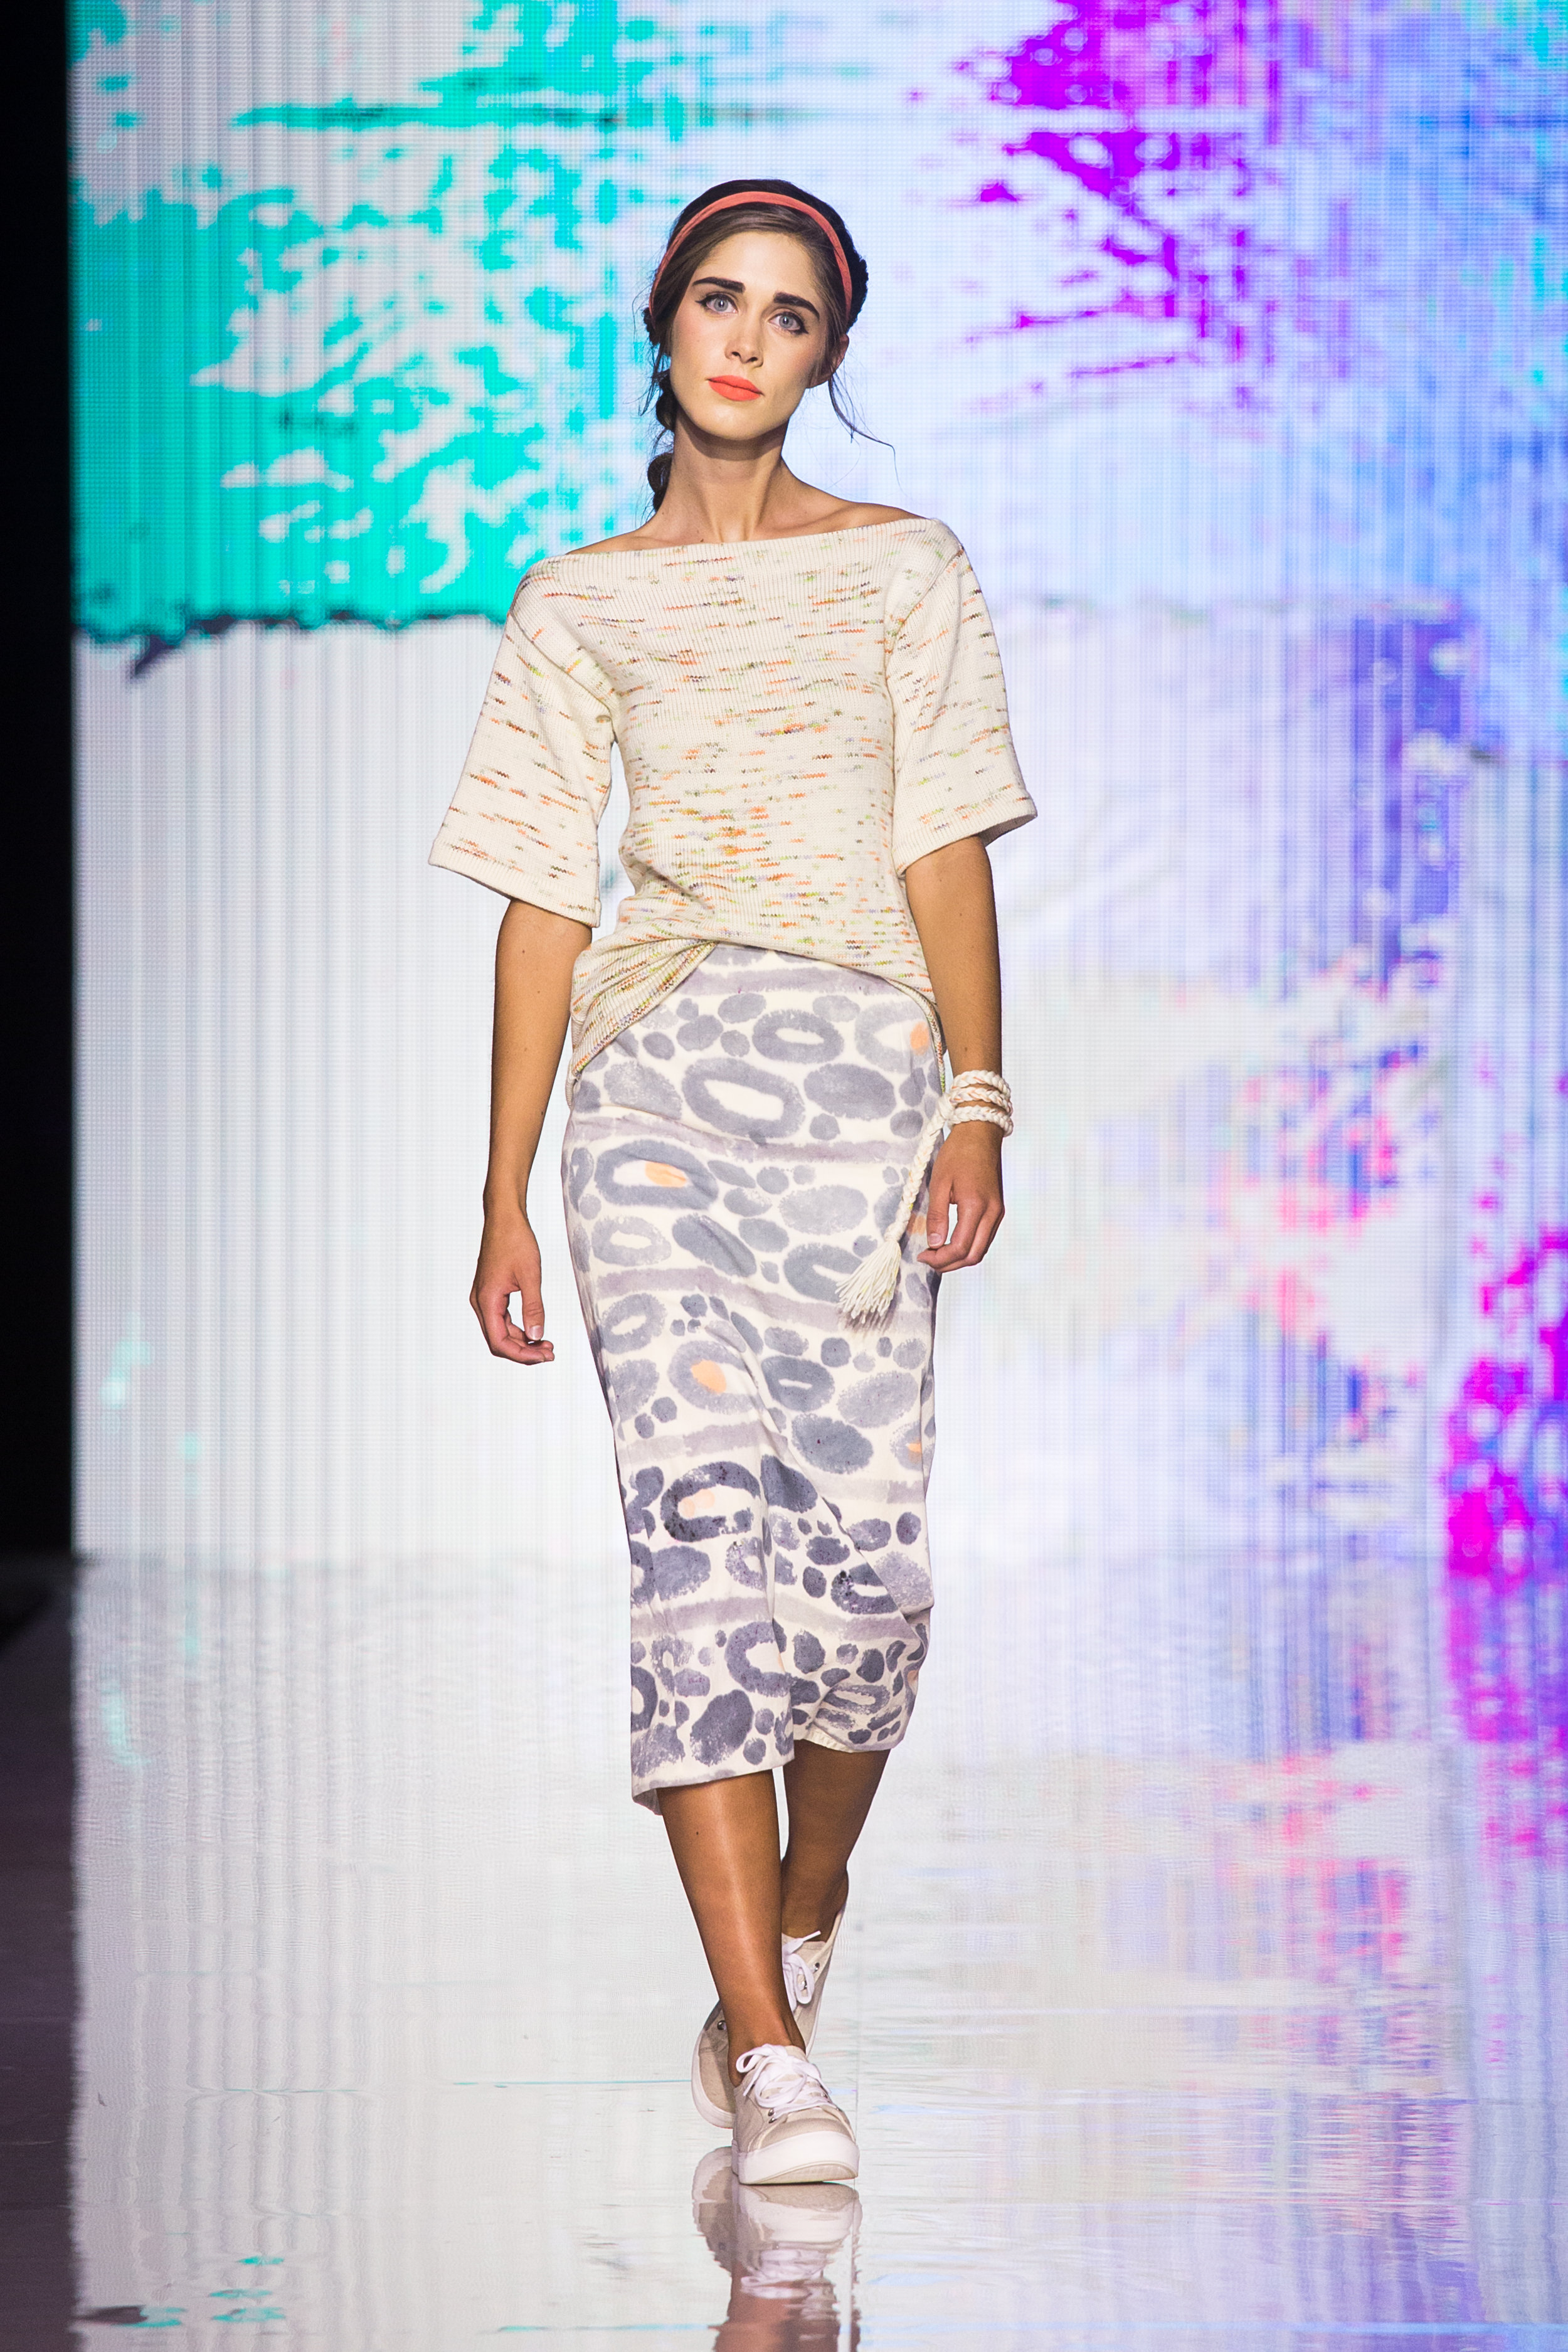 A look from Jane Round's SS17 show at Omaha Fashion Week